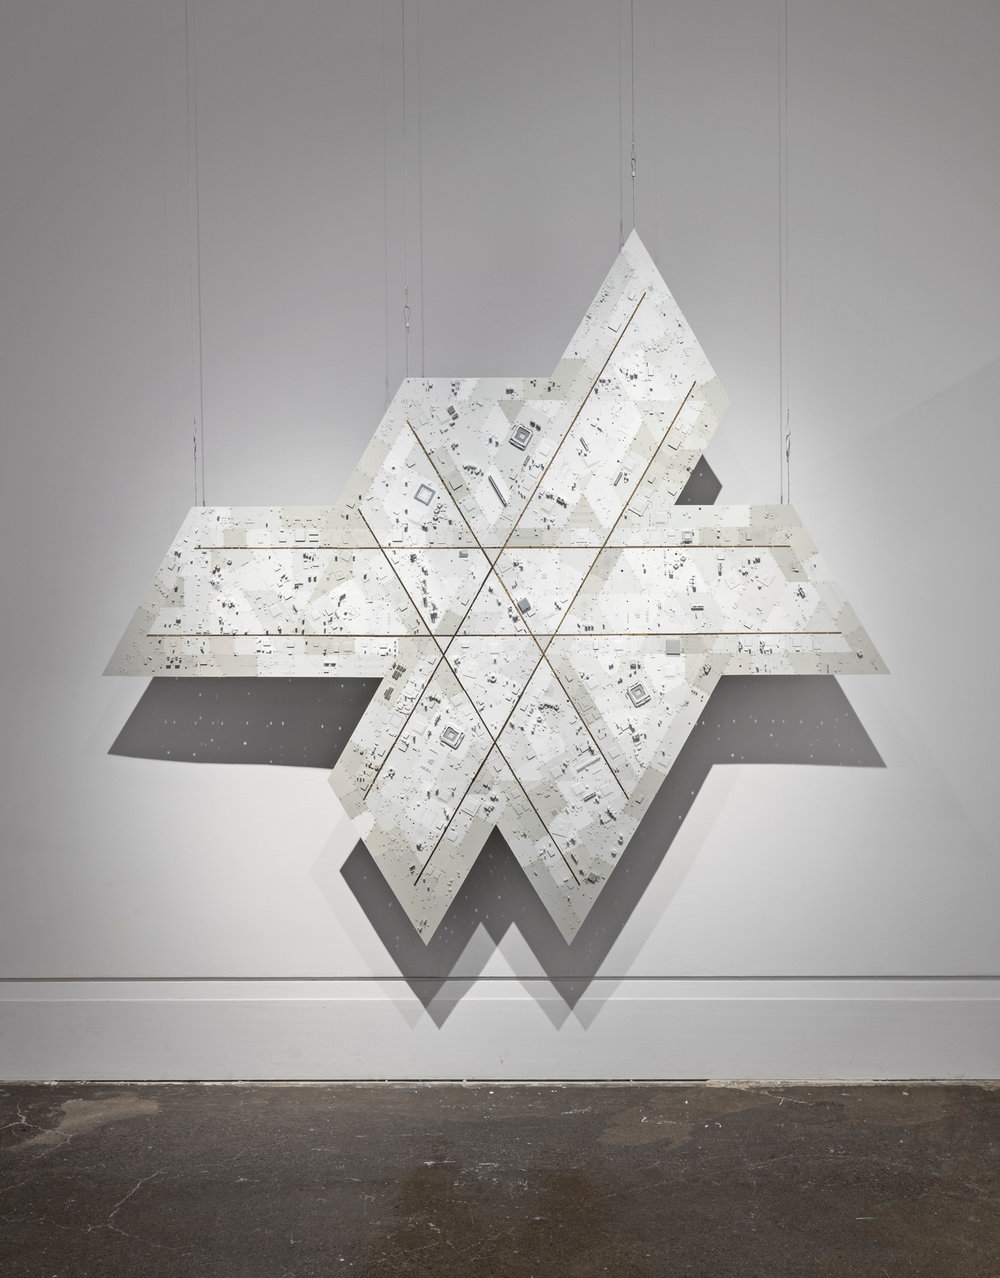 Wally Dion,   Icosahedron , 201, circuit boards, wire, enamel paint, 83h x 90w .  Exhibition at Urban Shaman Gallery, Winnipeg, MB.